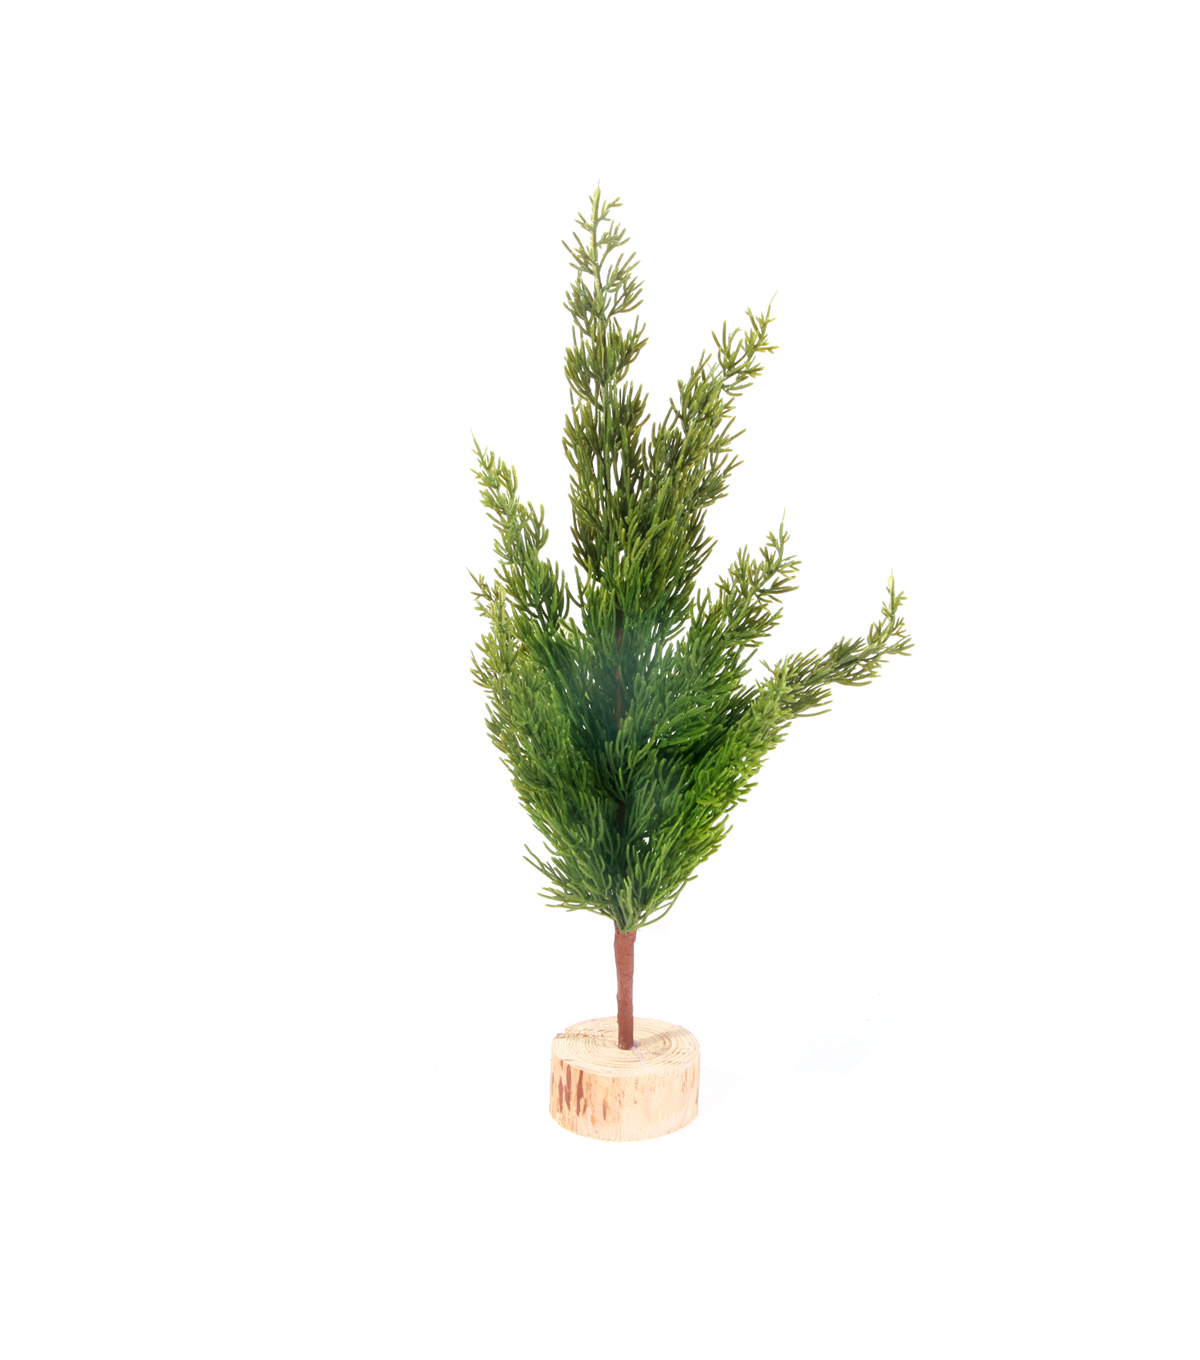 Handmade Holiday Christmas Small Primitive Pine Tree